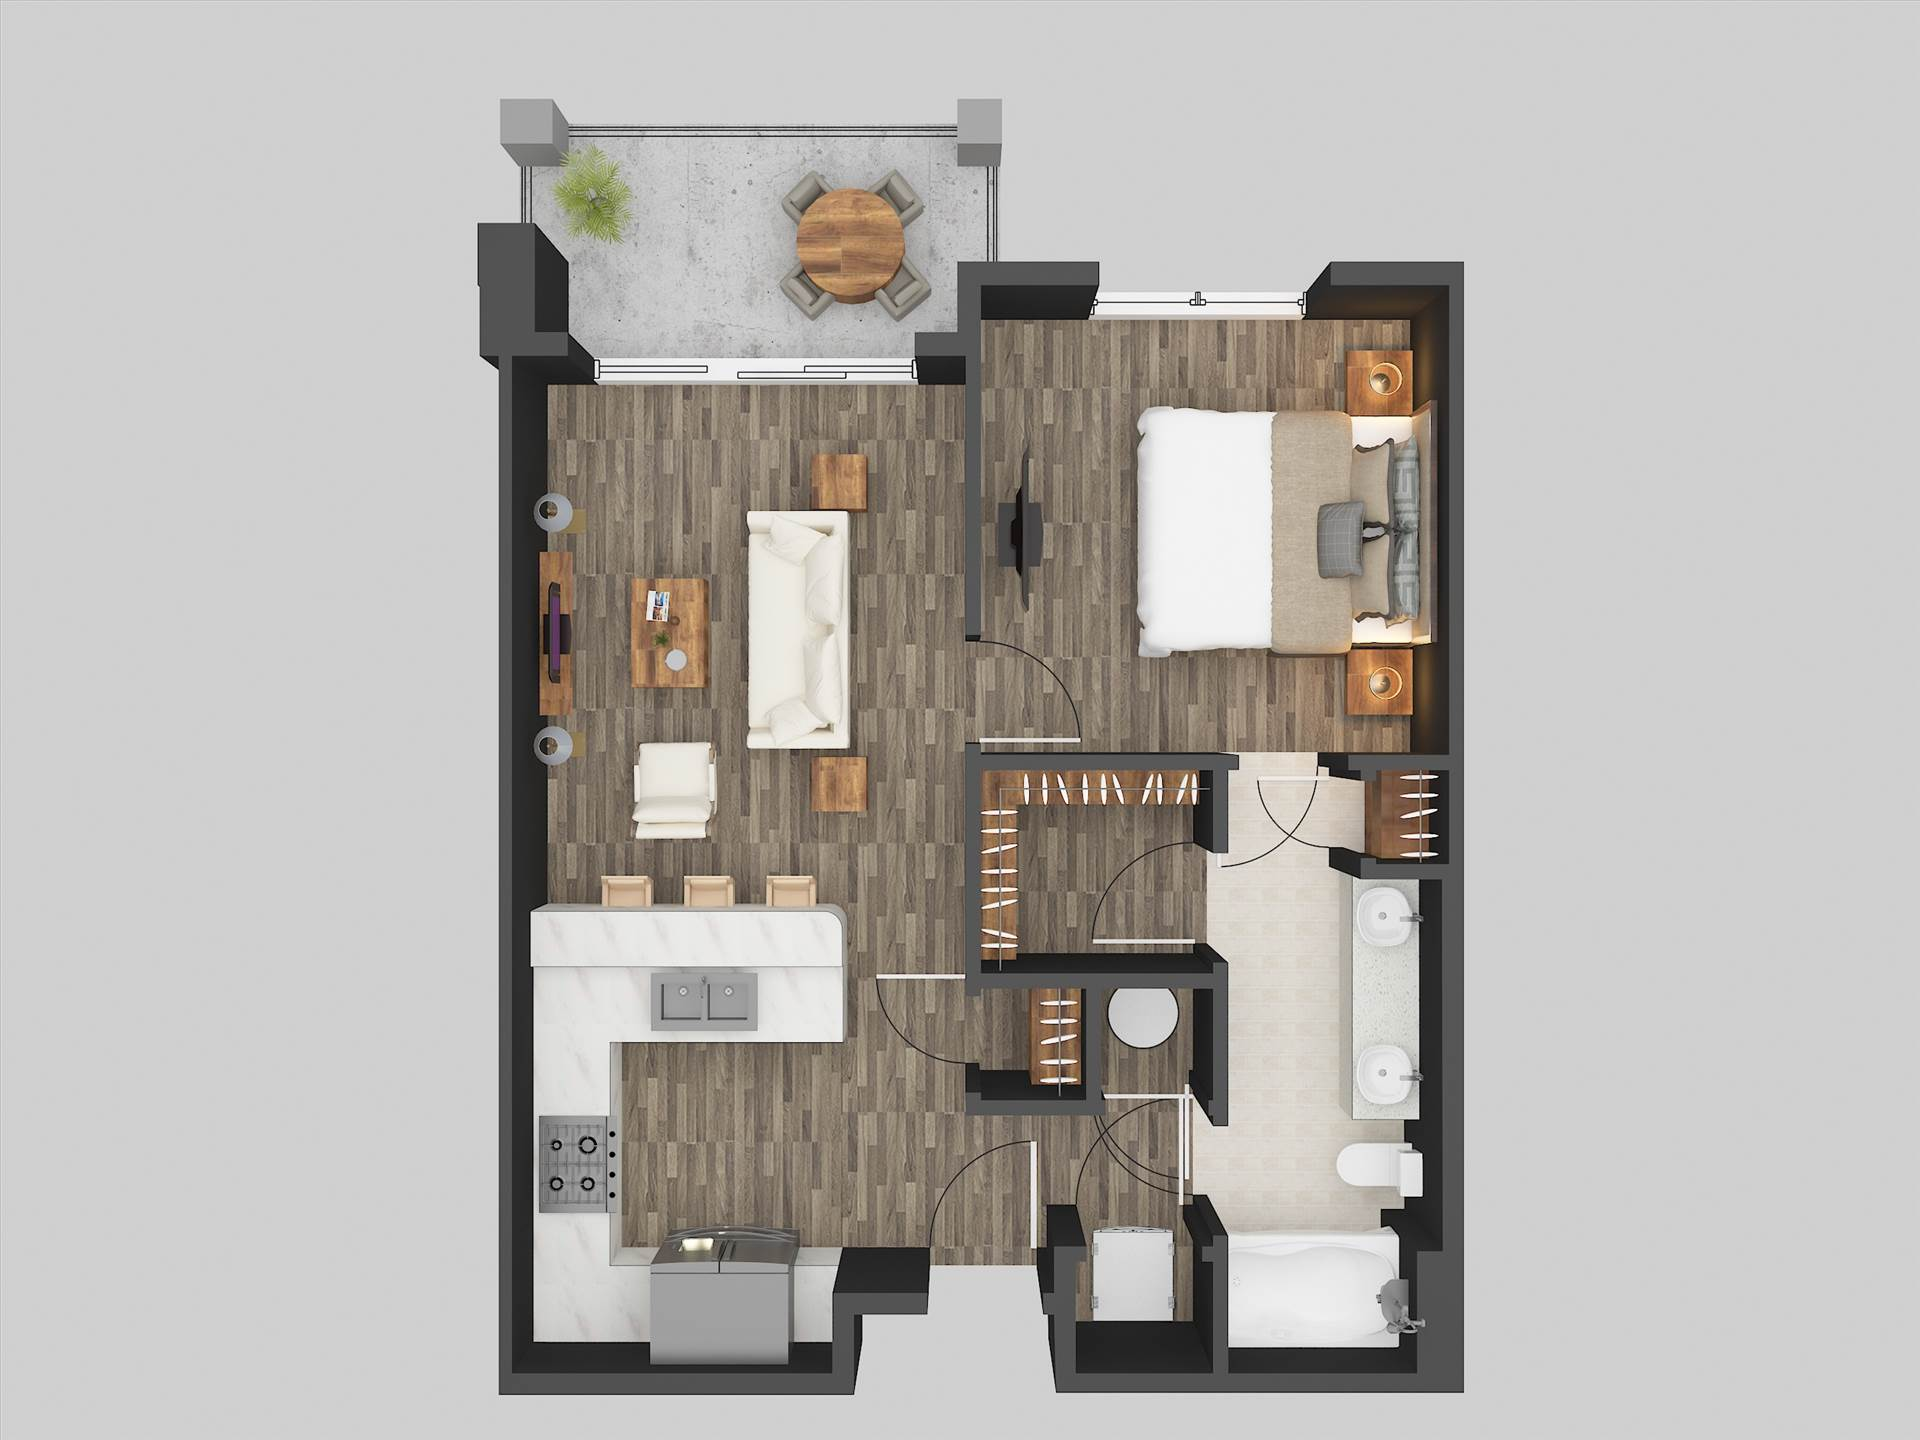 3D Floor Plan Rendering Services Miami Florida 3D Floor Plan Rendering Services for Real Estate Business Marketing Miami Florida by JMSDCONSULTANT